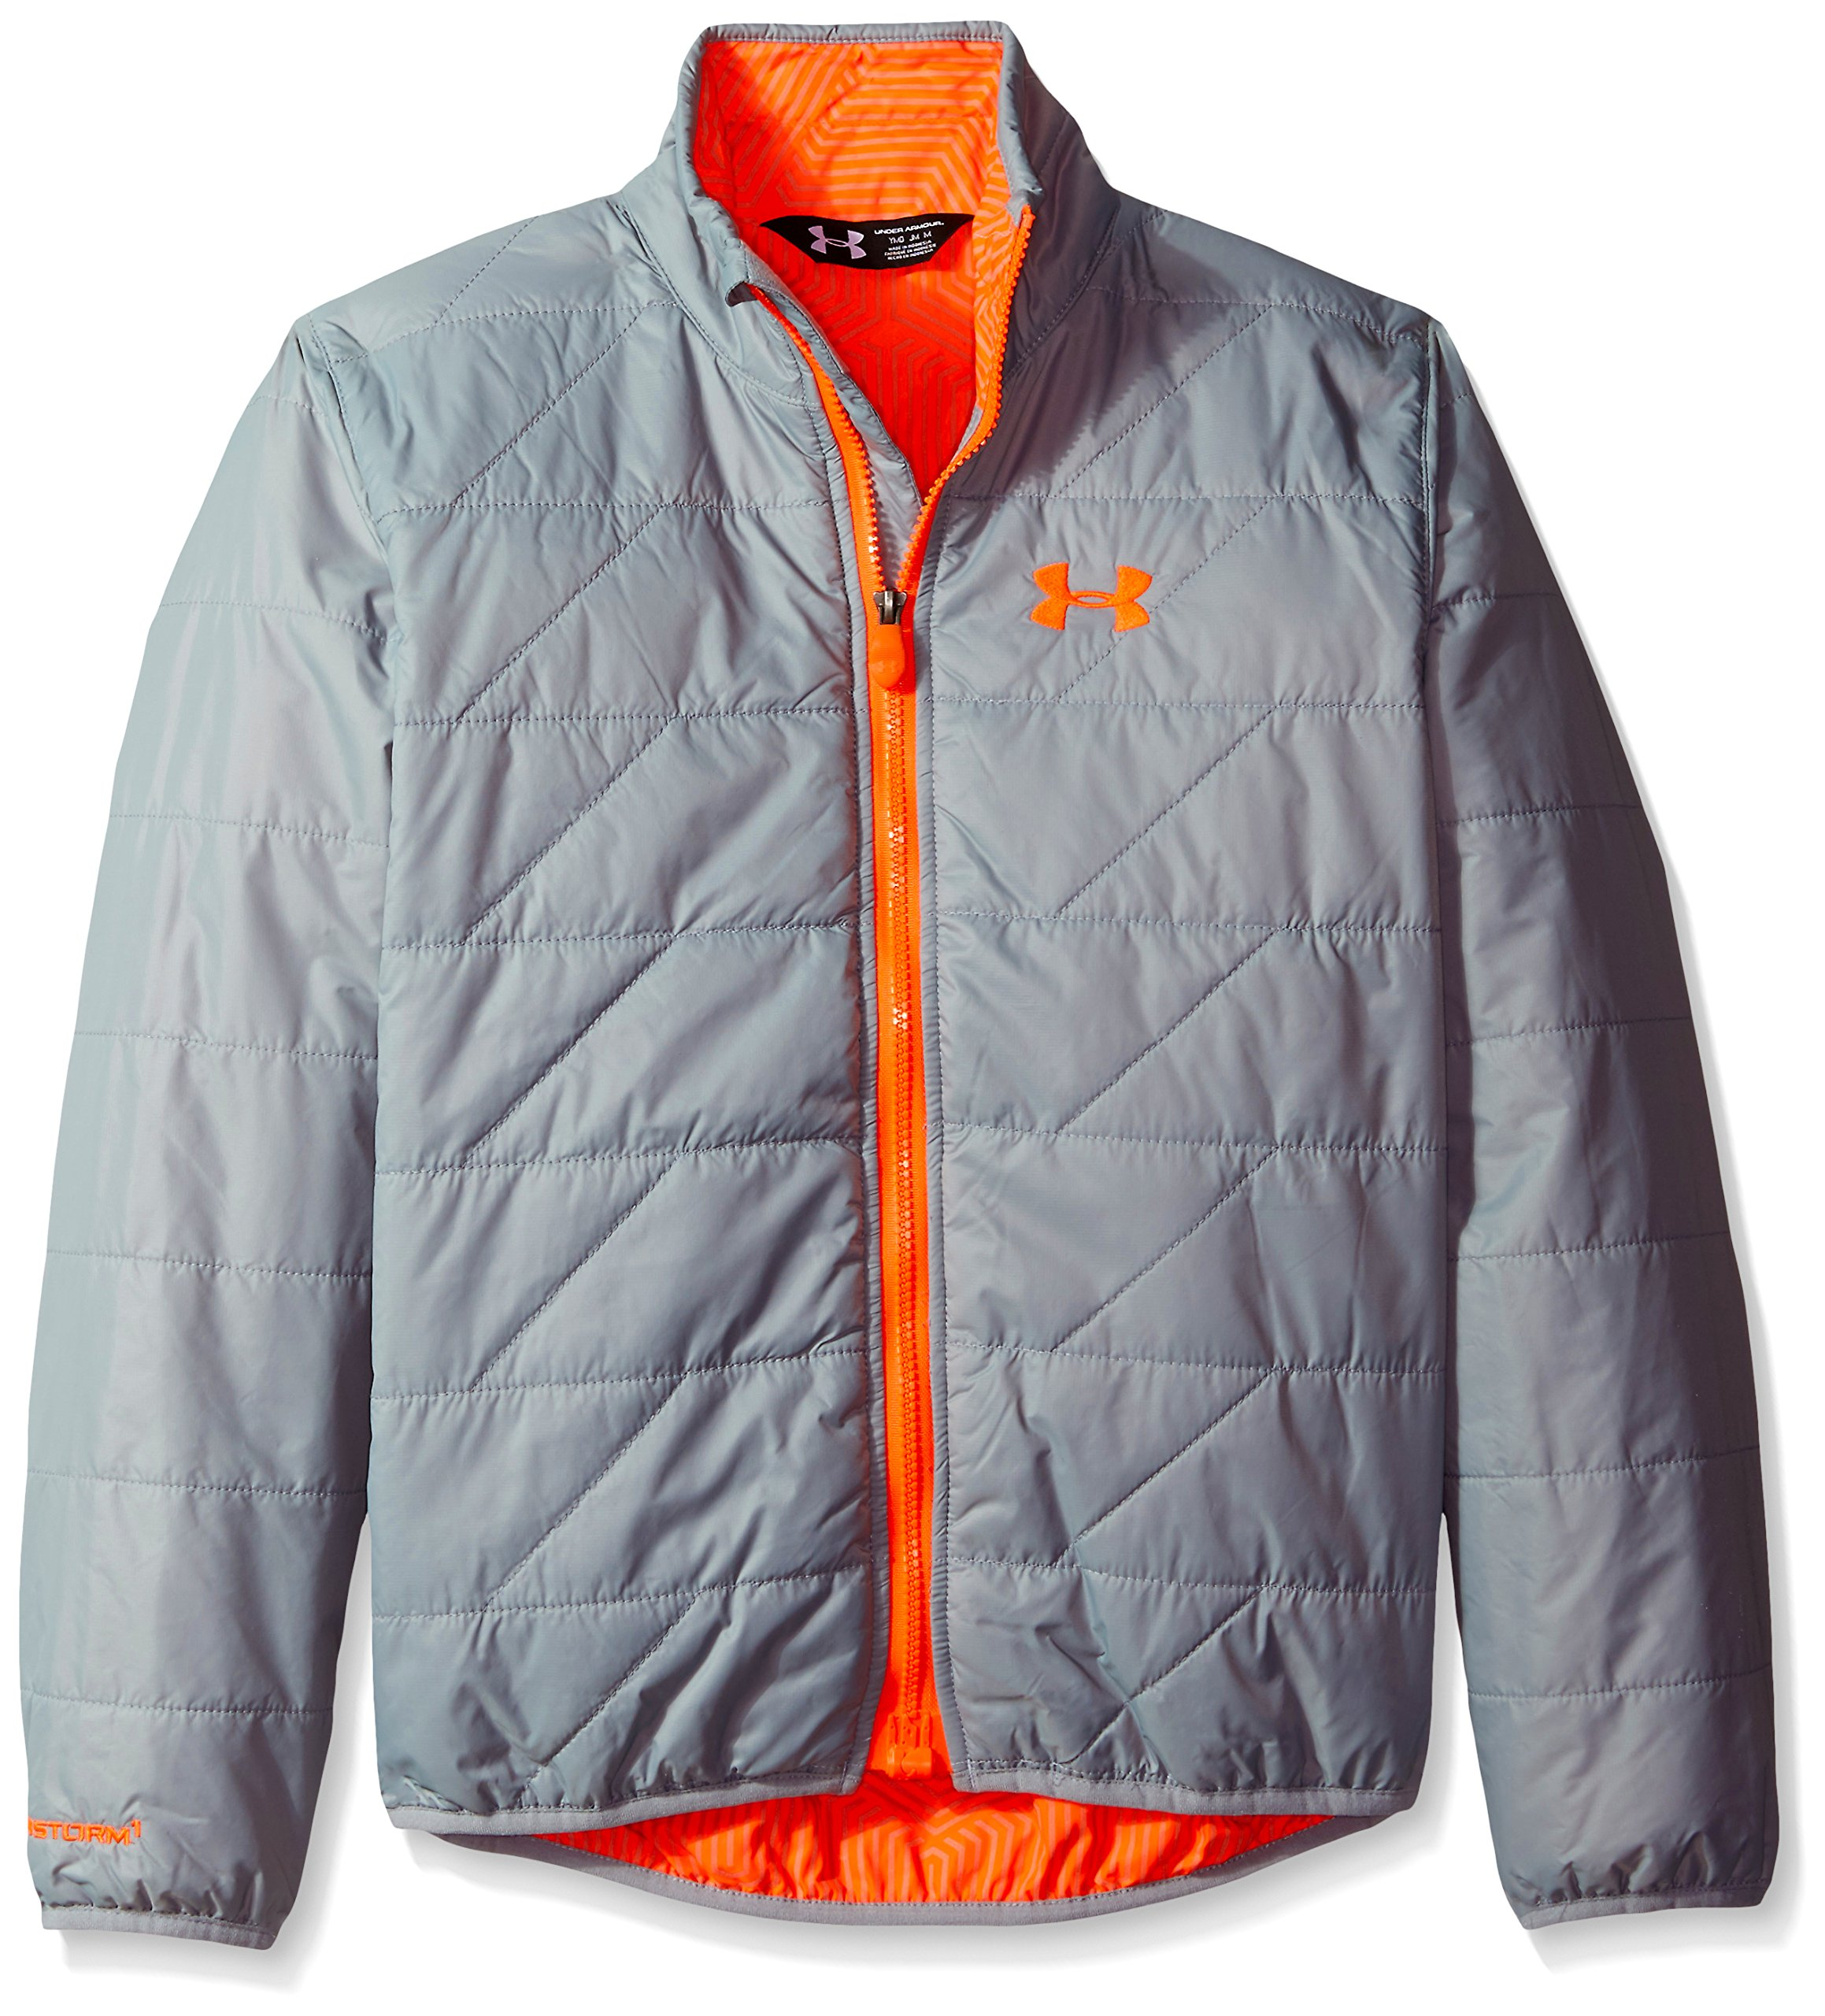 Under Armour Boys UA Micro Jacket (Big Kids), Steel (035)/Bolt Orange, Youth Small